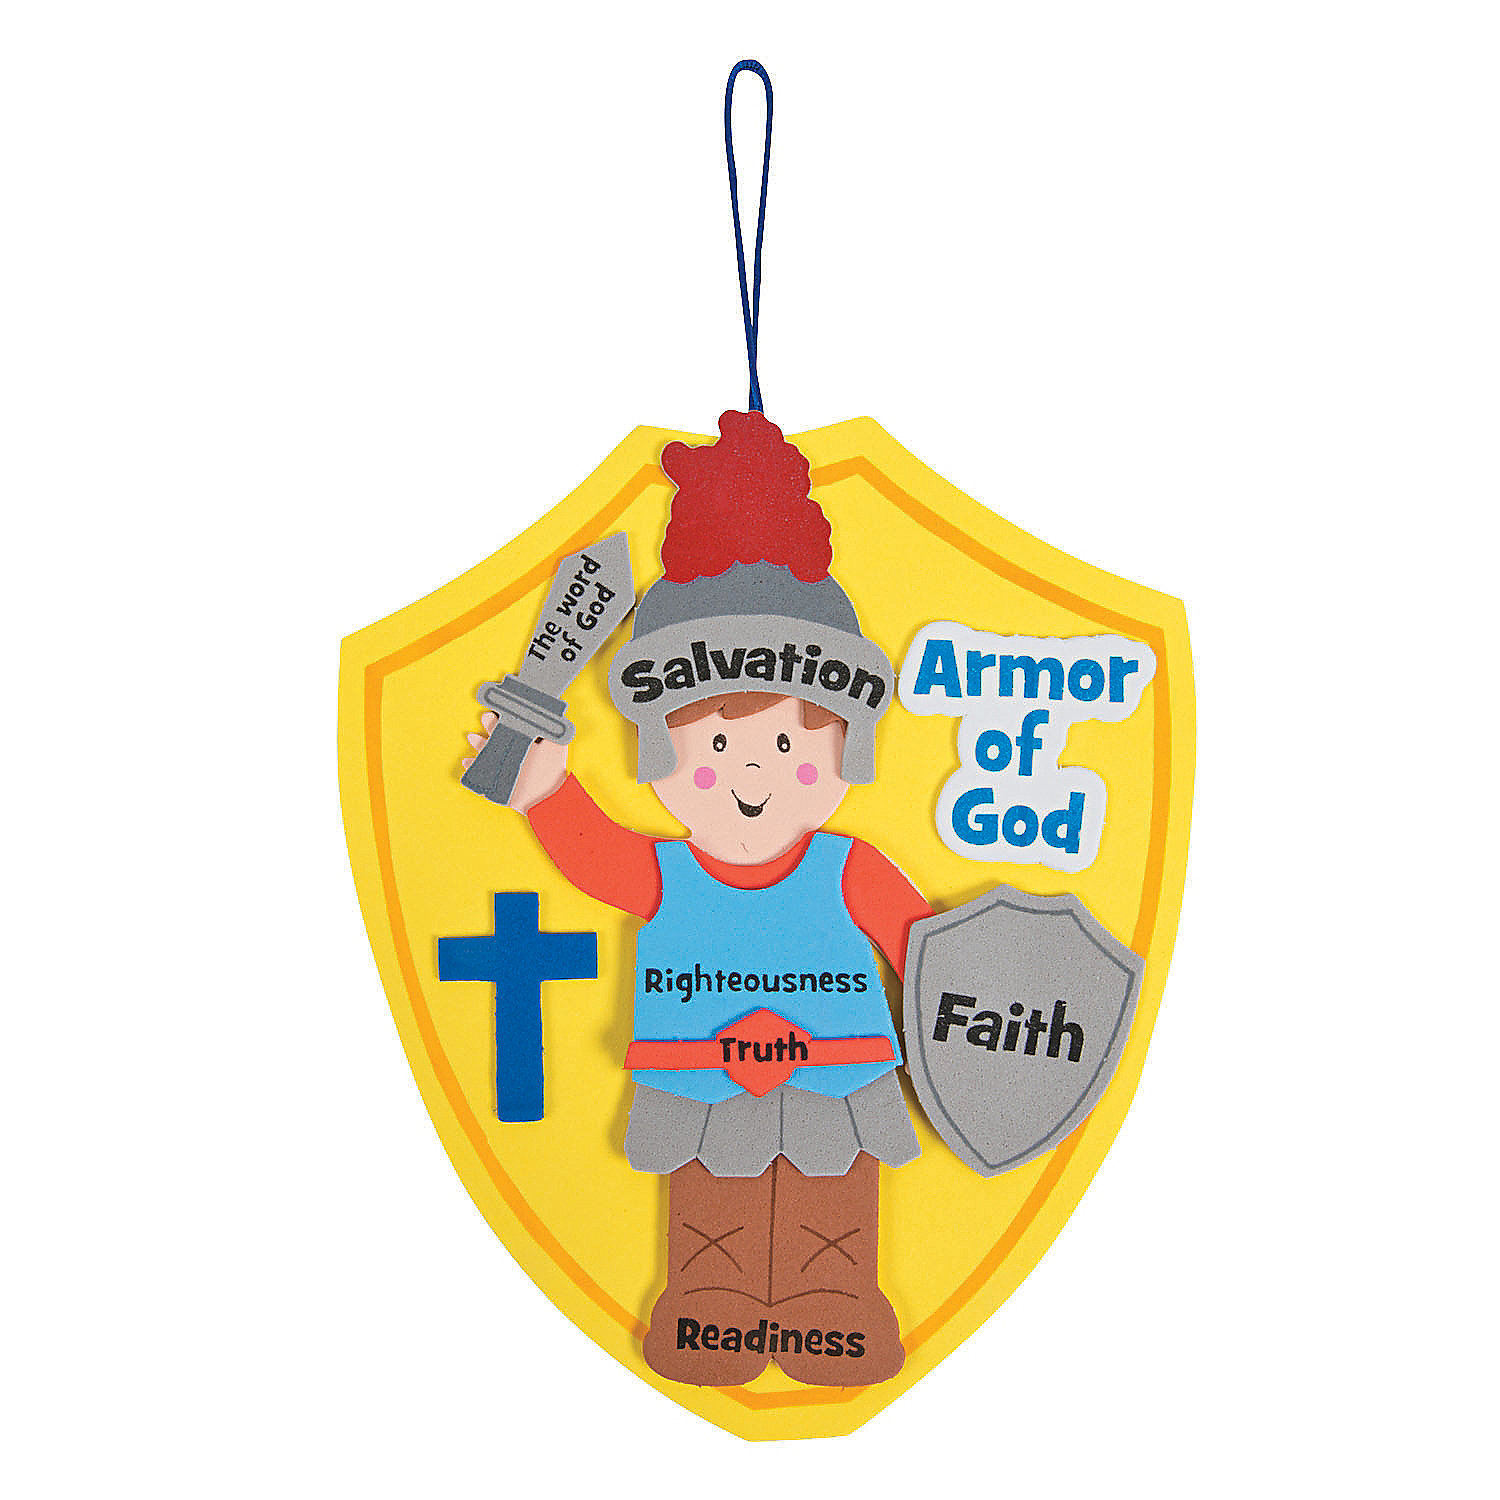 Fun Express - Armor Of God ck - Craft Kits - Hanging Decor Craft Kits - Sign Decoration Craft Kits - 12 Pieces